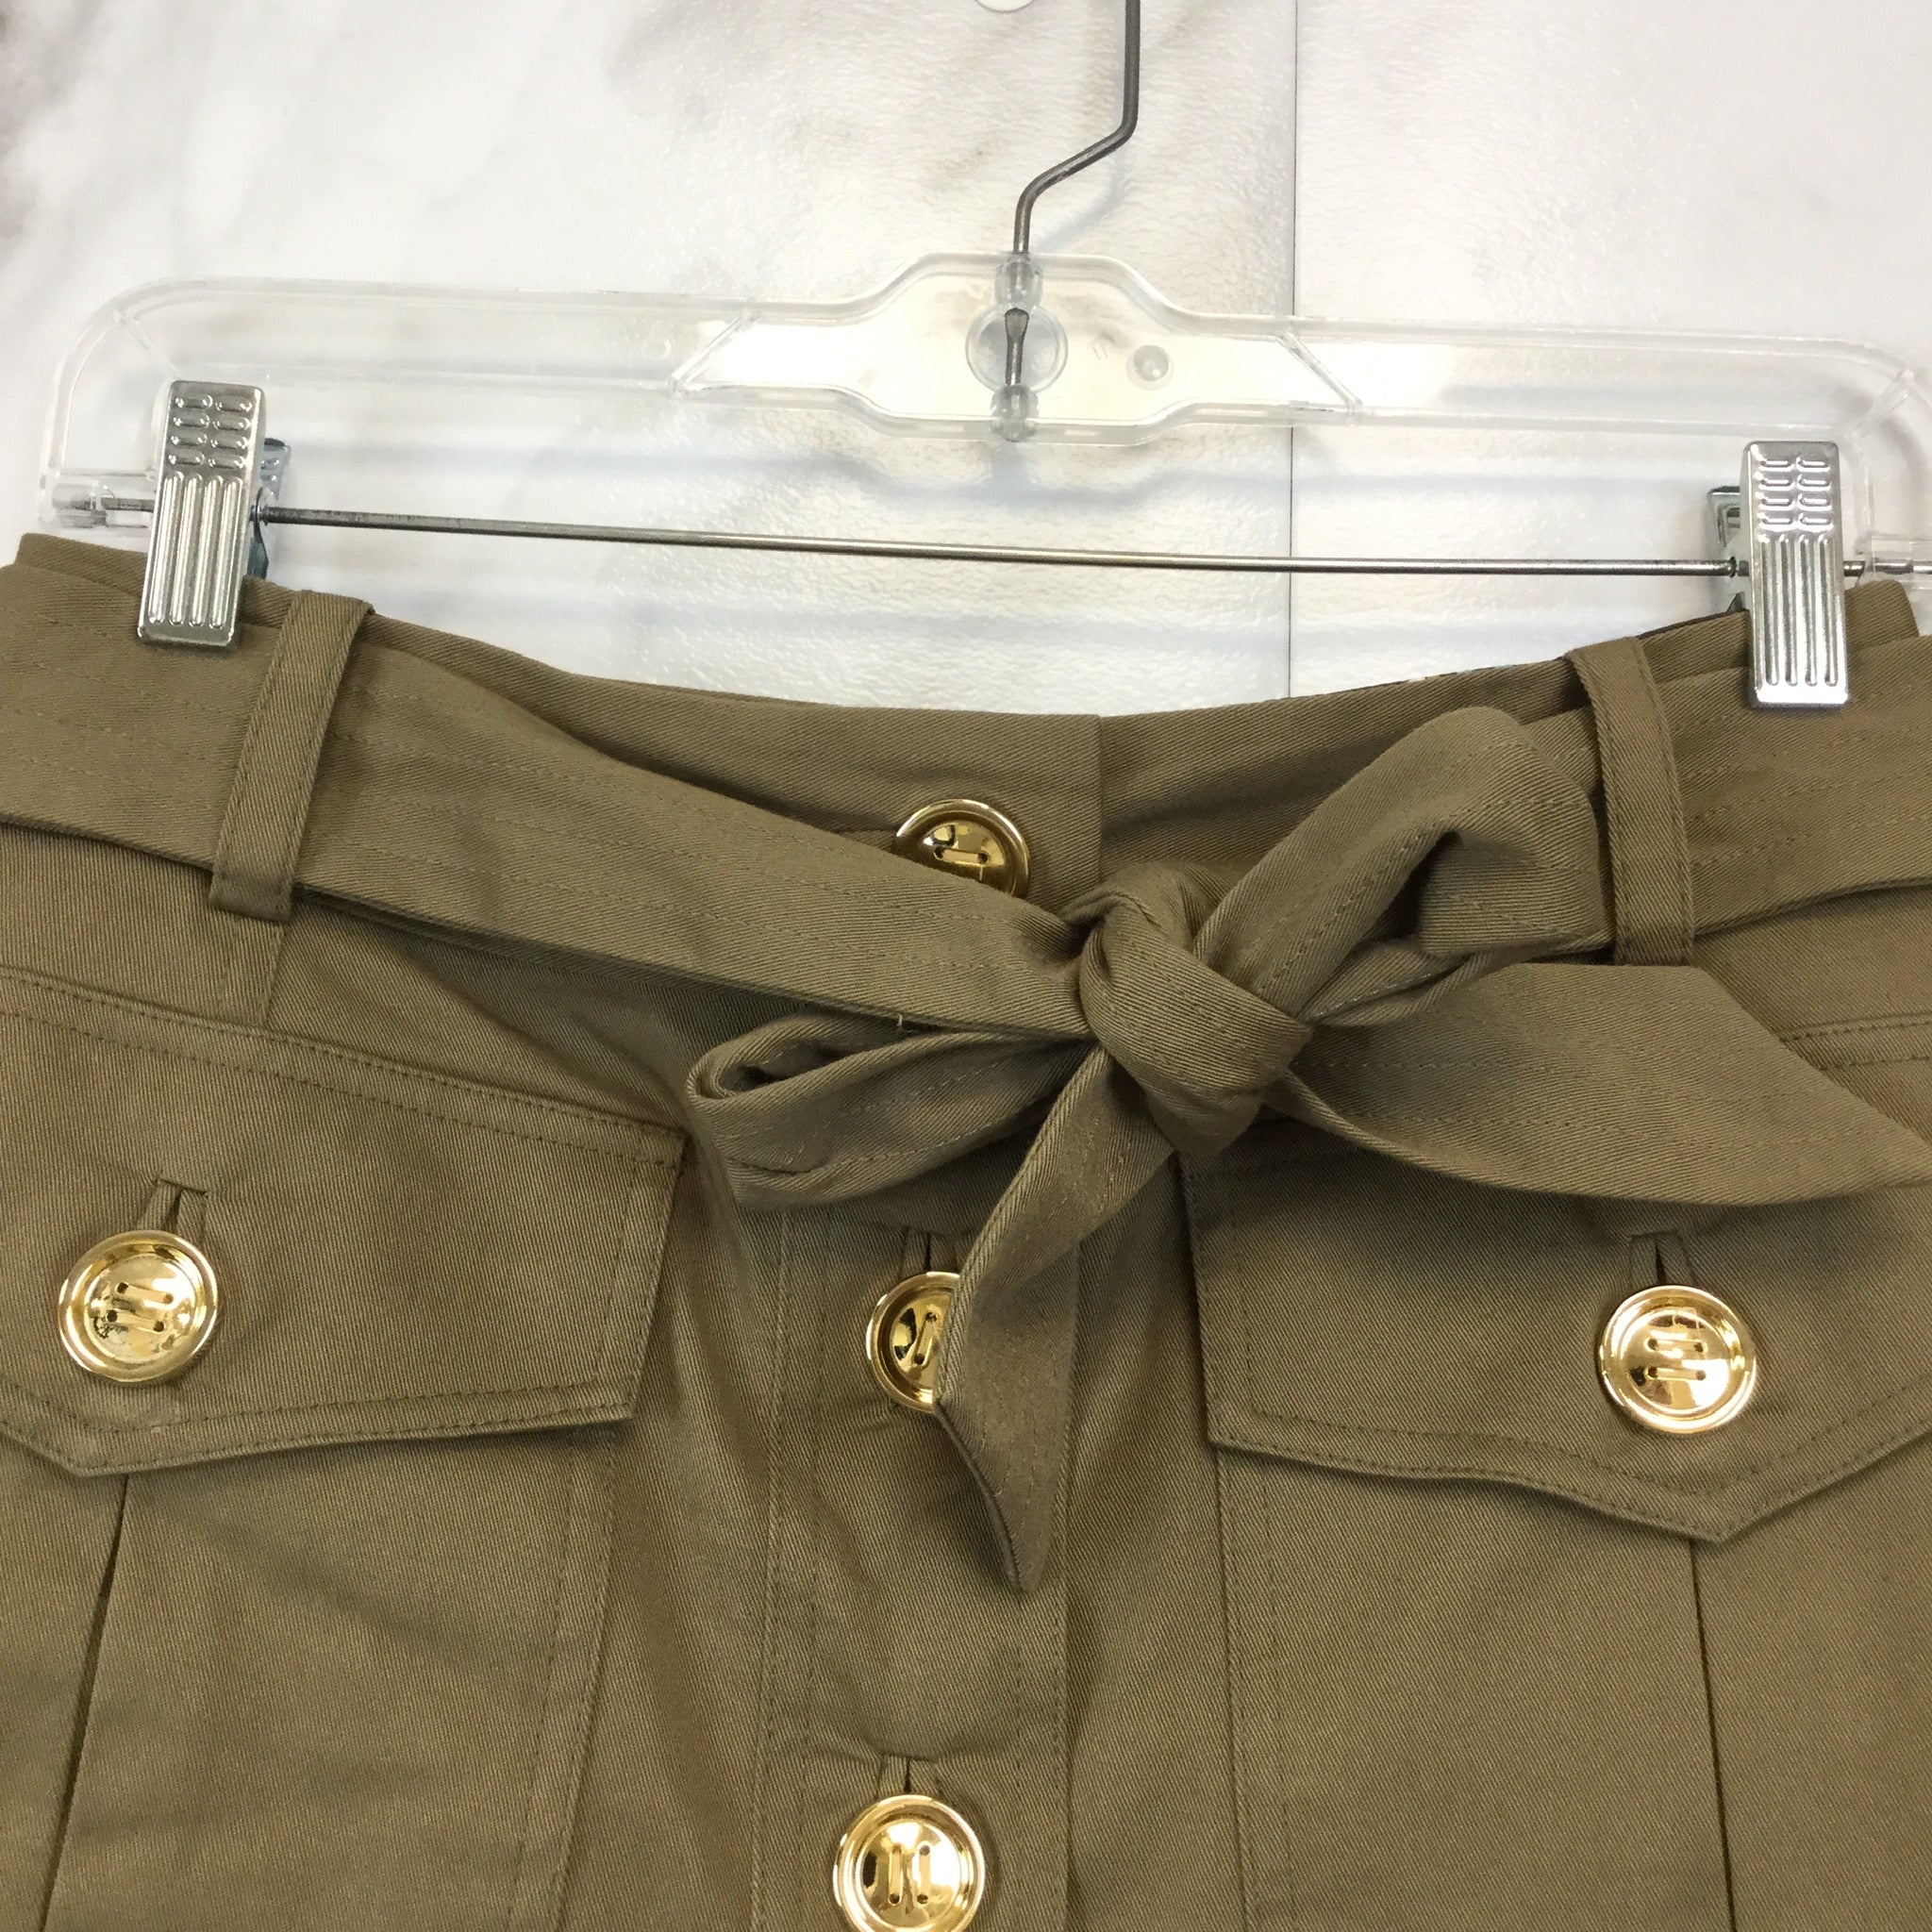 Milly Button Front Skirt - size 4